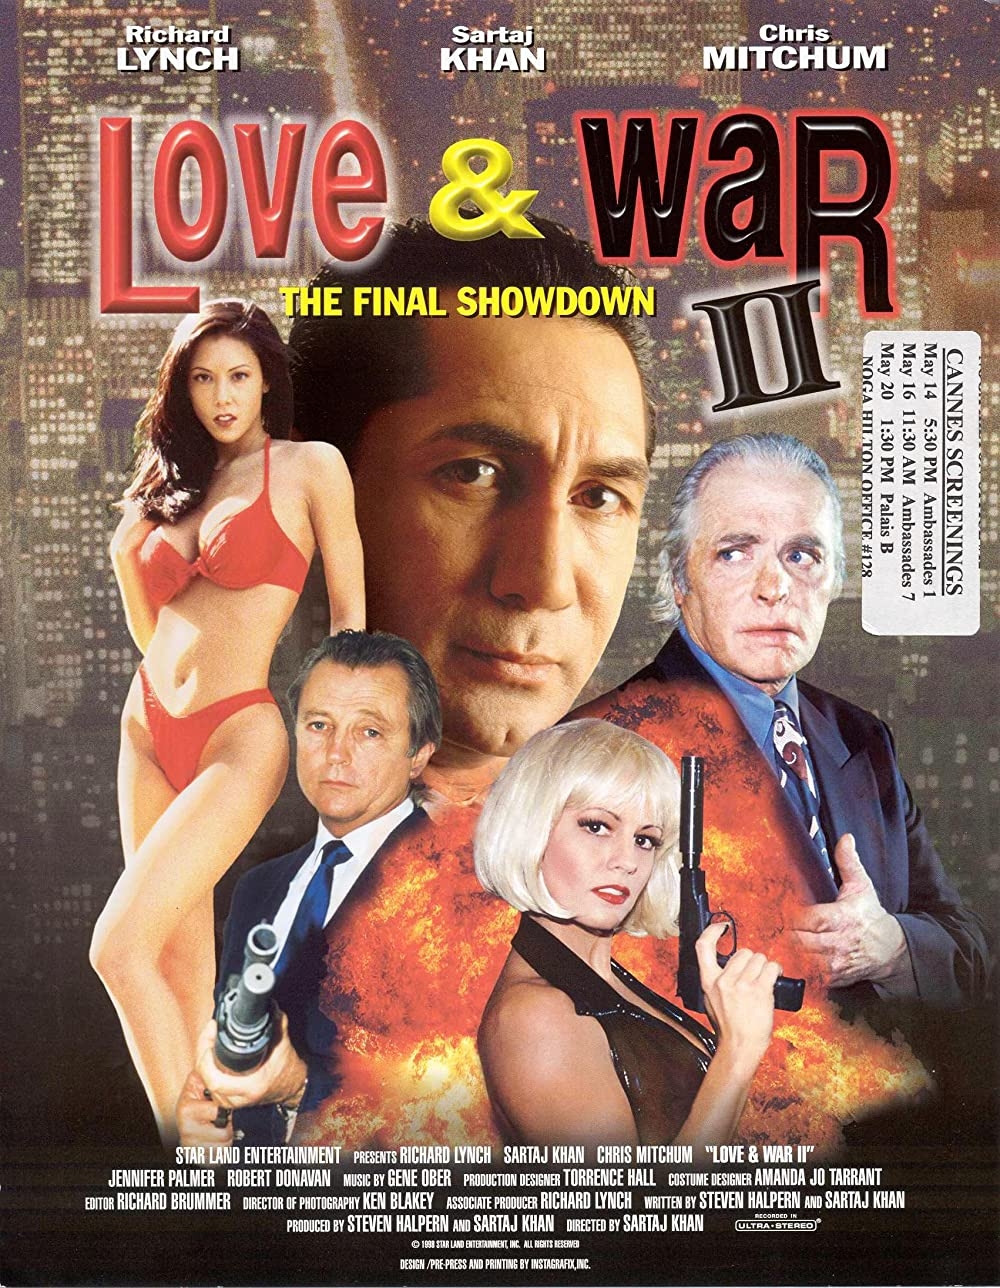 18+ Love and War II (1998) Hindi Dual Audio 480p UNRATED DVDRip 350MB x264 AAC